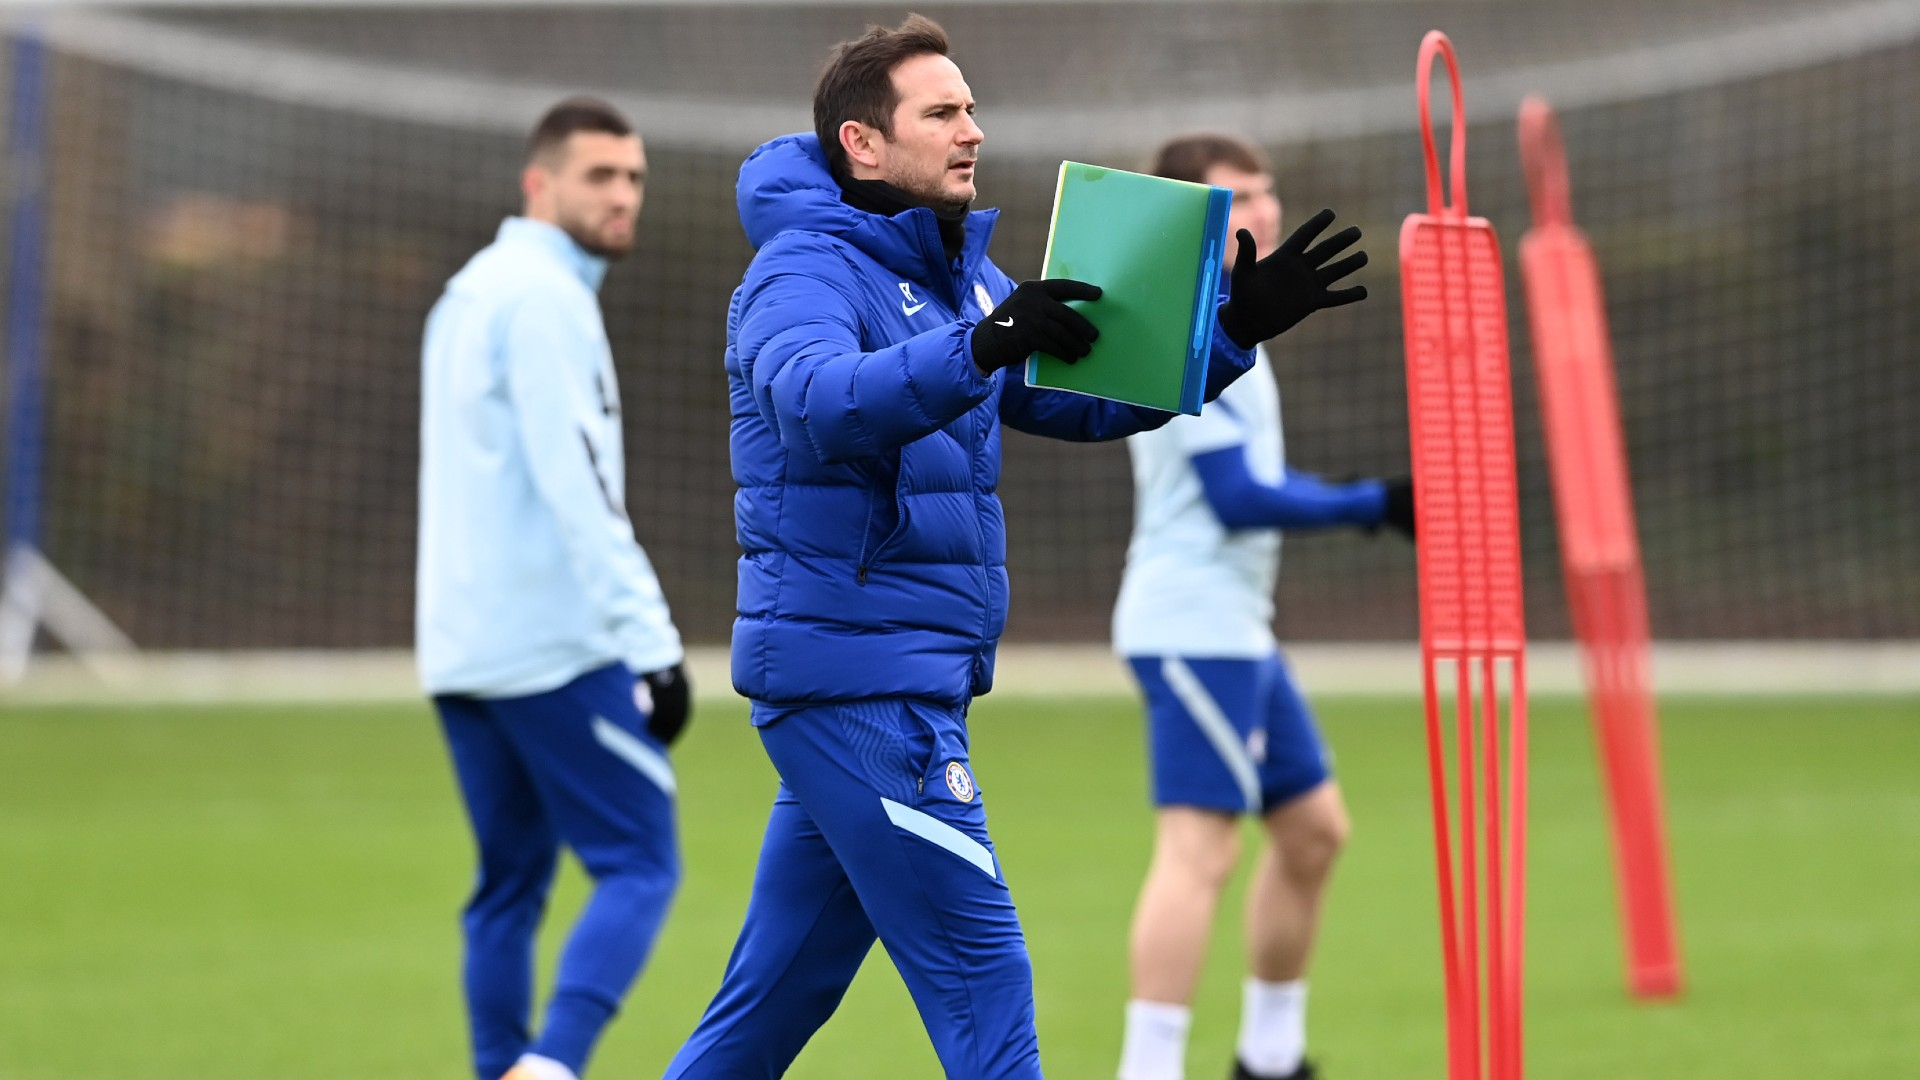 No goal or assist machines like Costa and Hazard - Lampard moves to calm Chelsea expectations